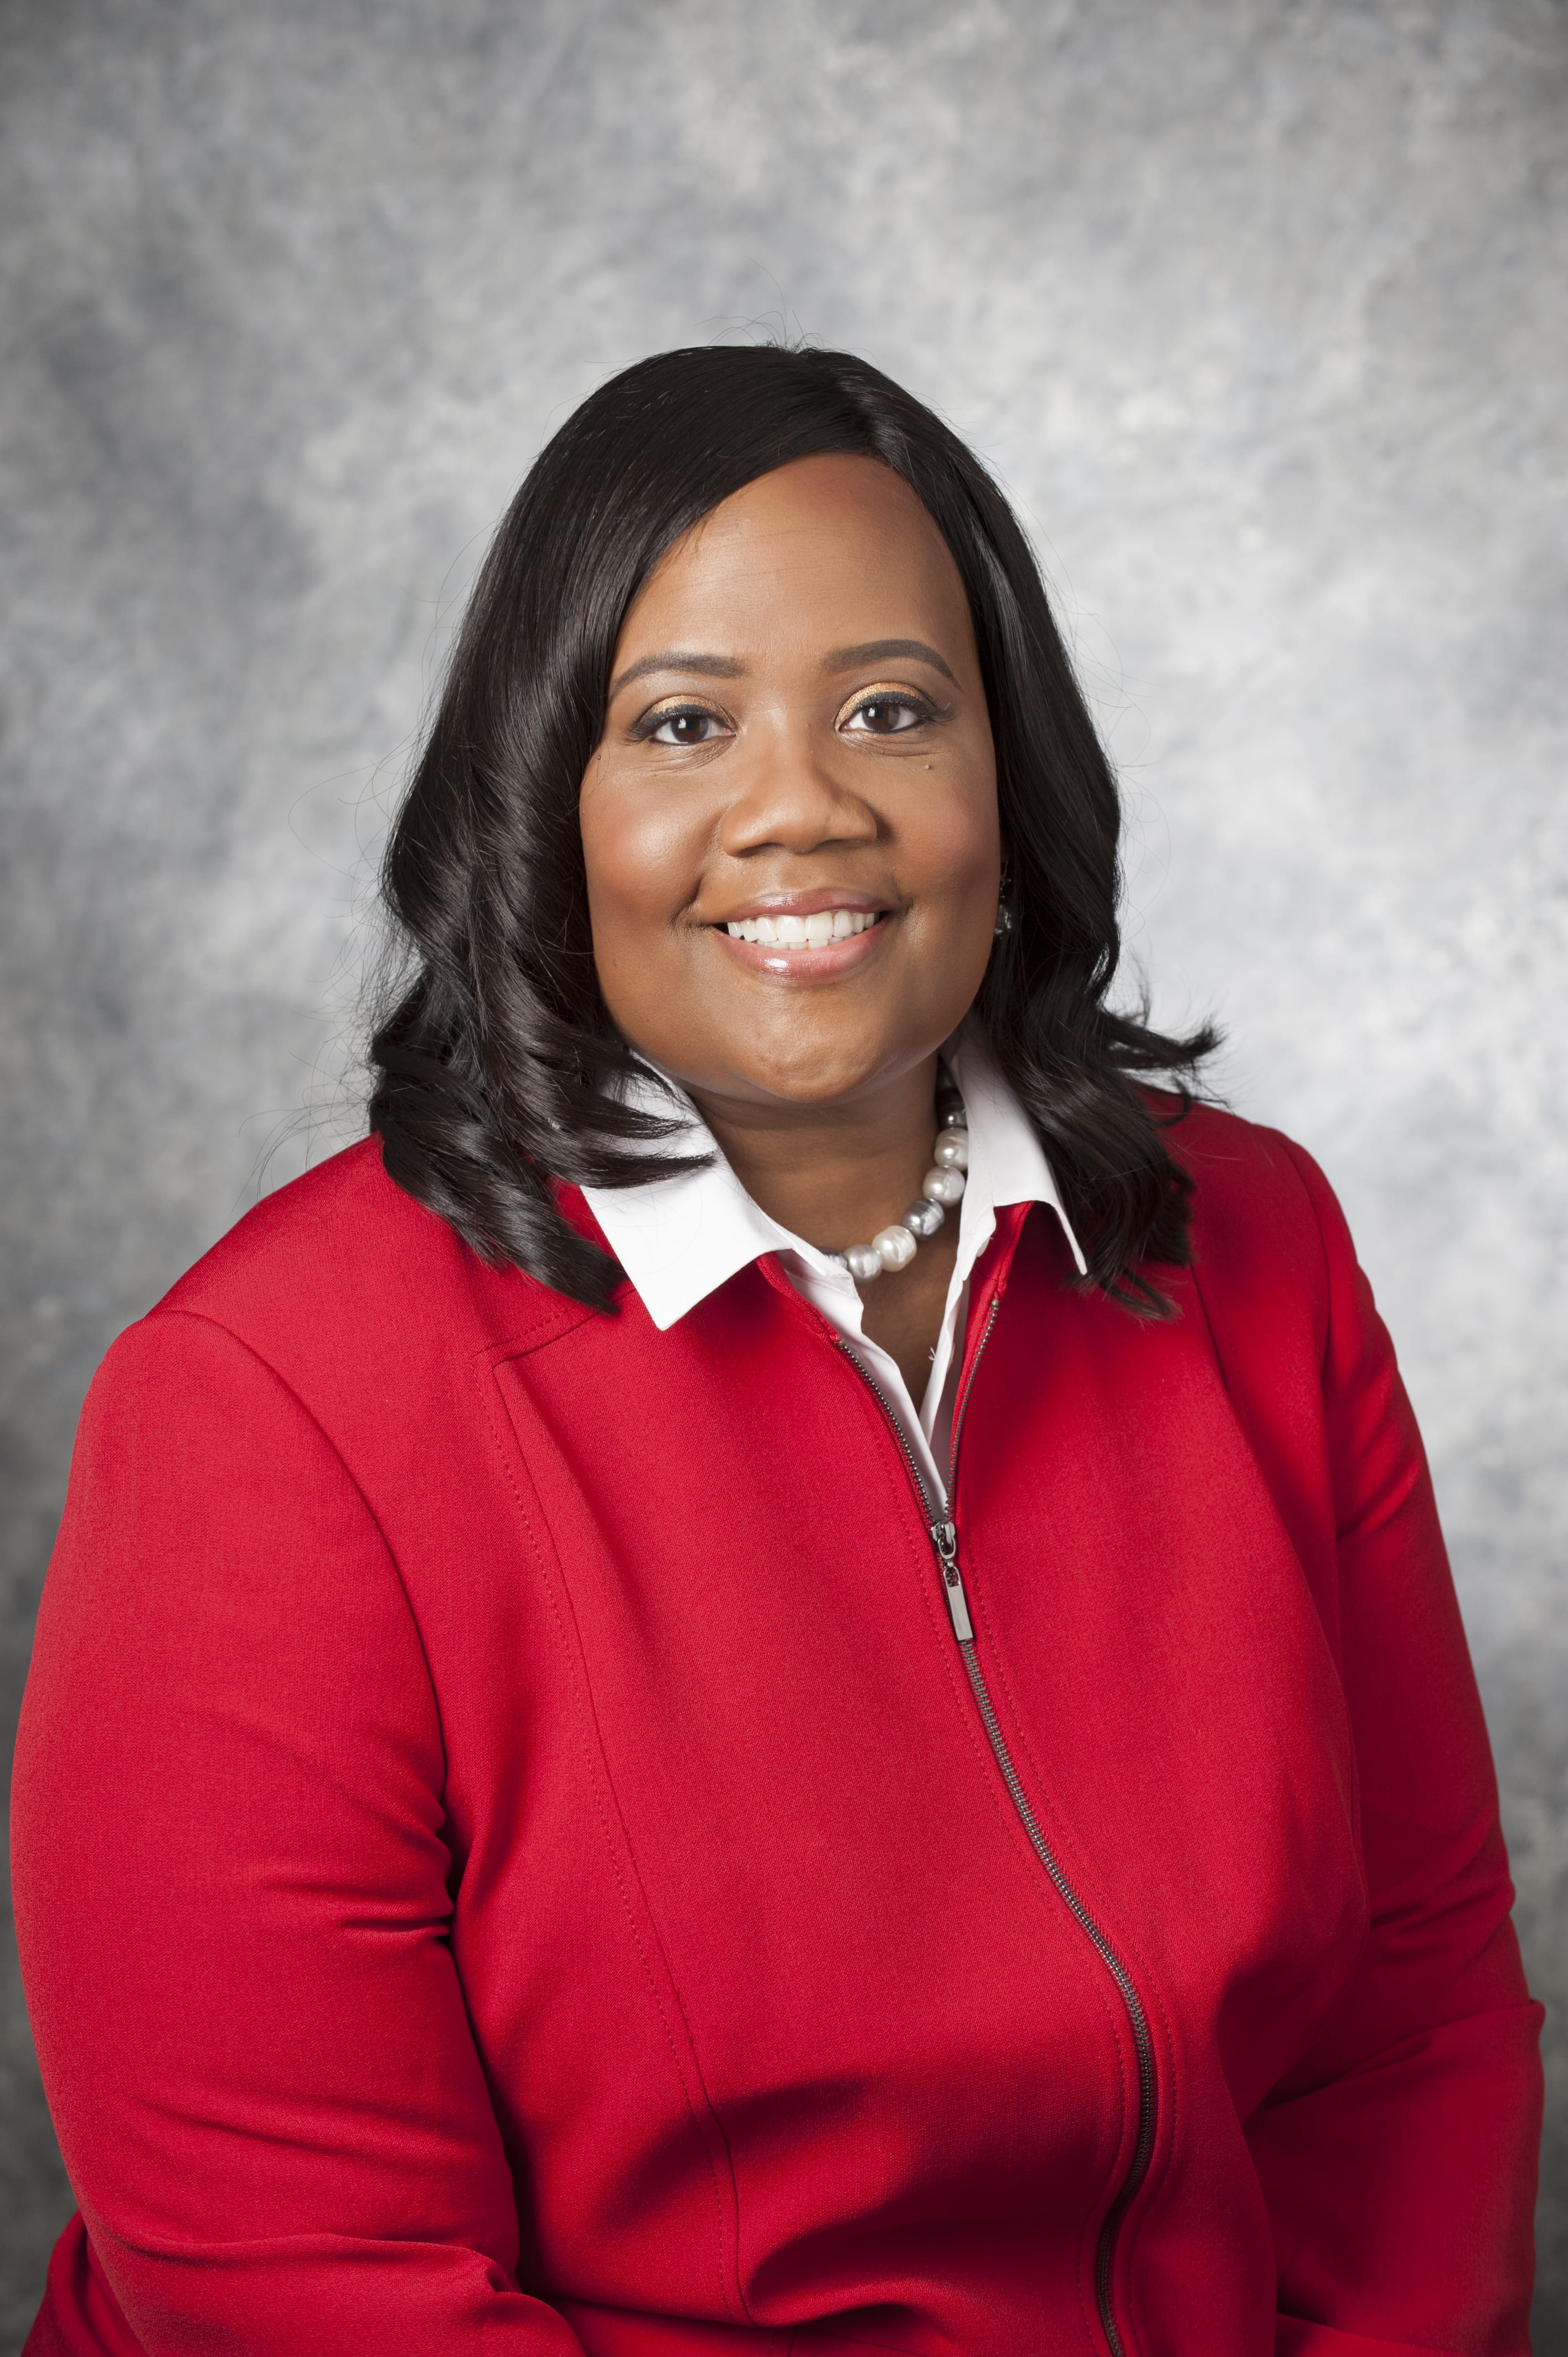 A tribute to Dr. Pamela Anthony